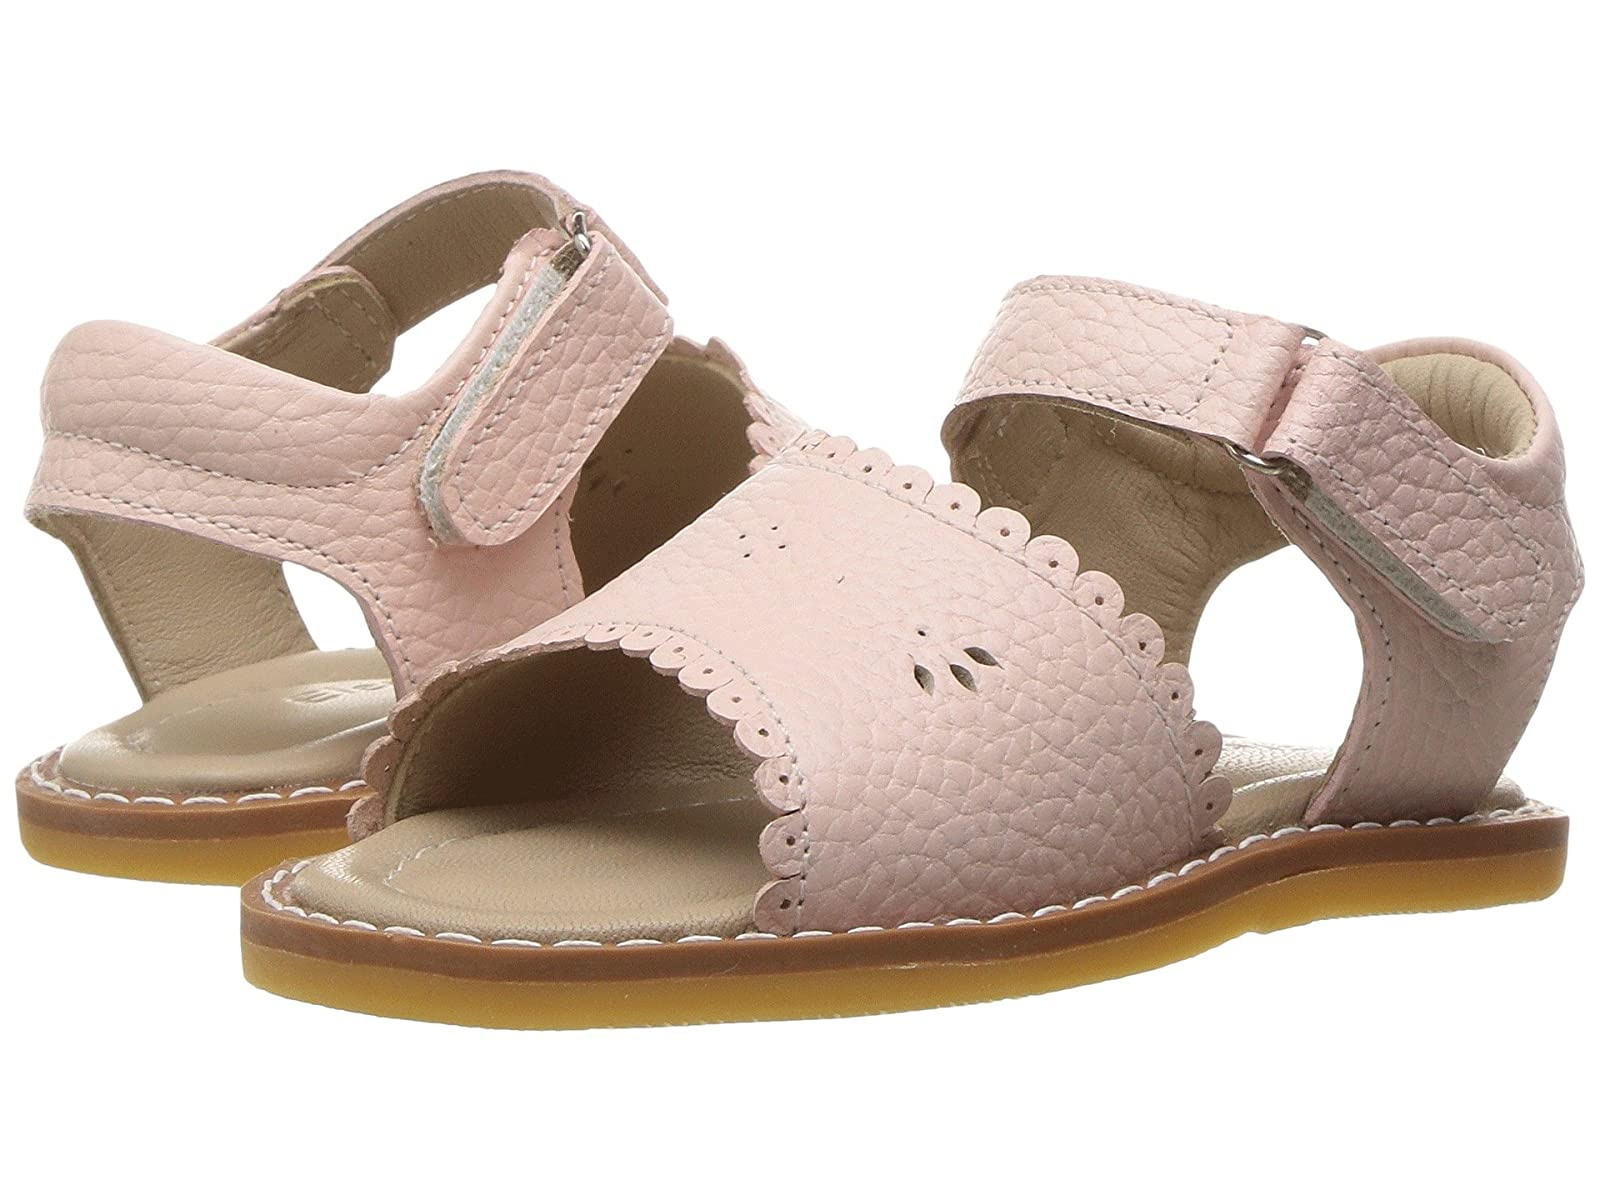 Elephantito Classic Sandal w/Scallop (Toddler)Atmospheric grades have affordable shoes